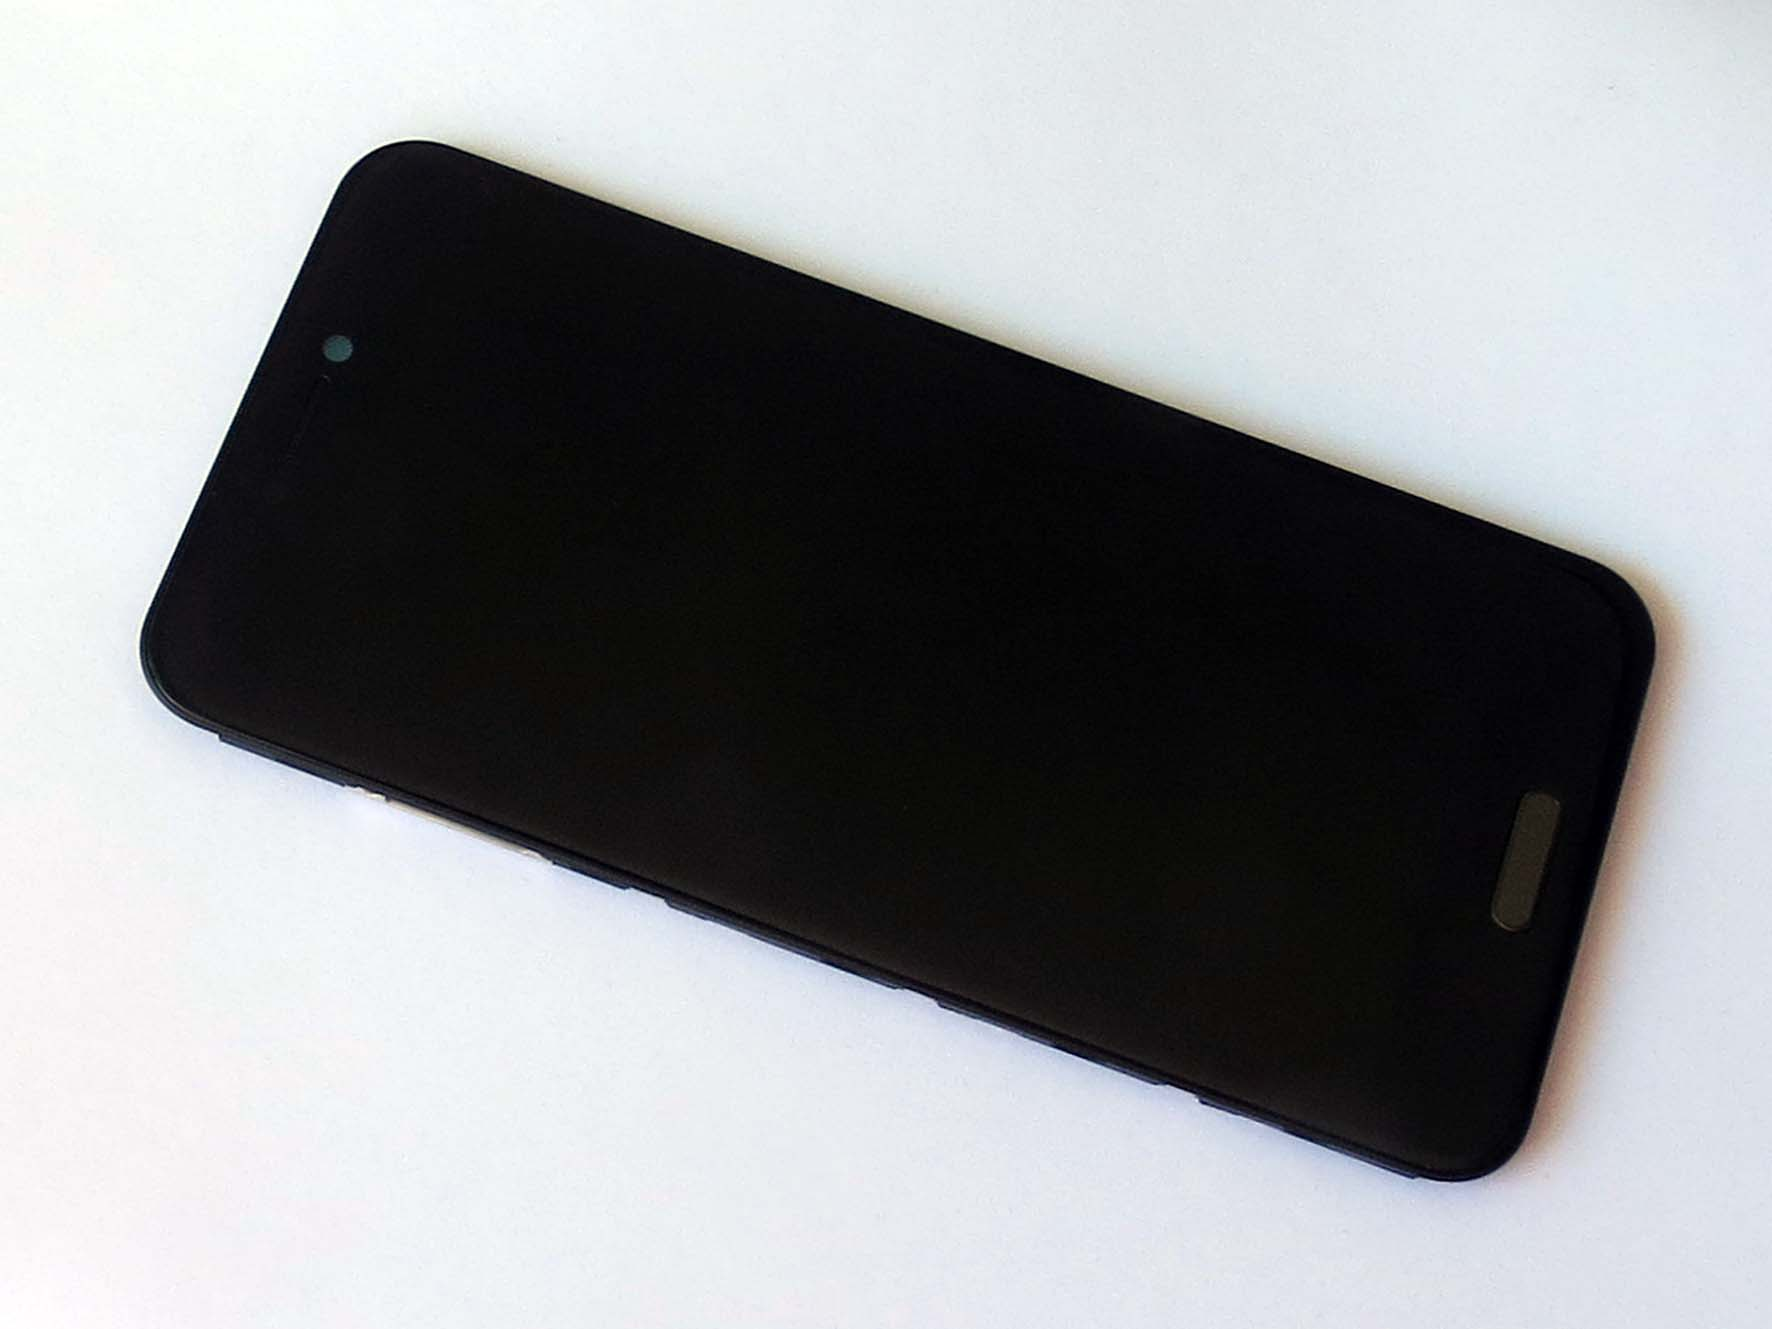 Original Complete screen with front housing for xiaomi 5c Mi5c - Black